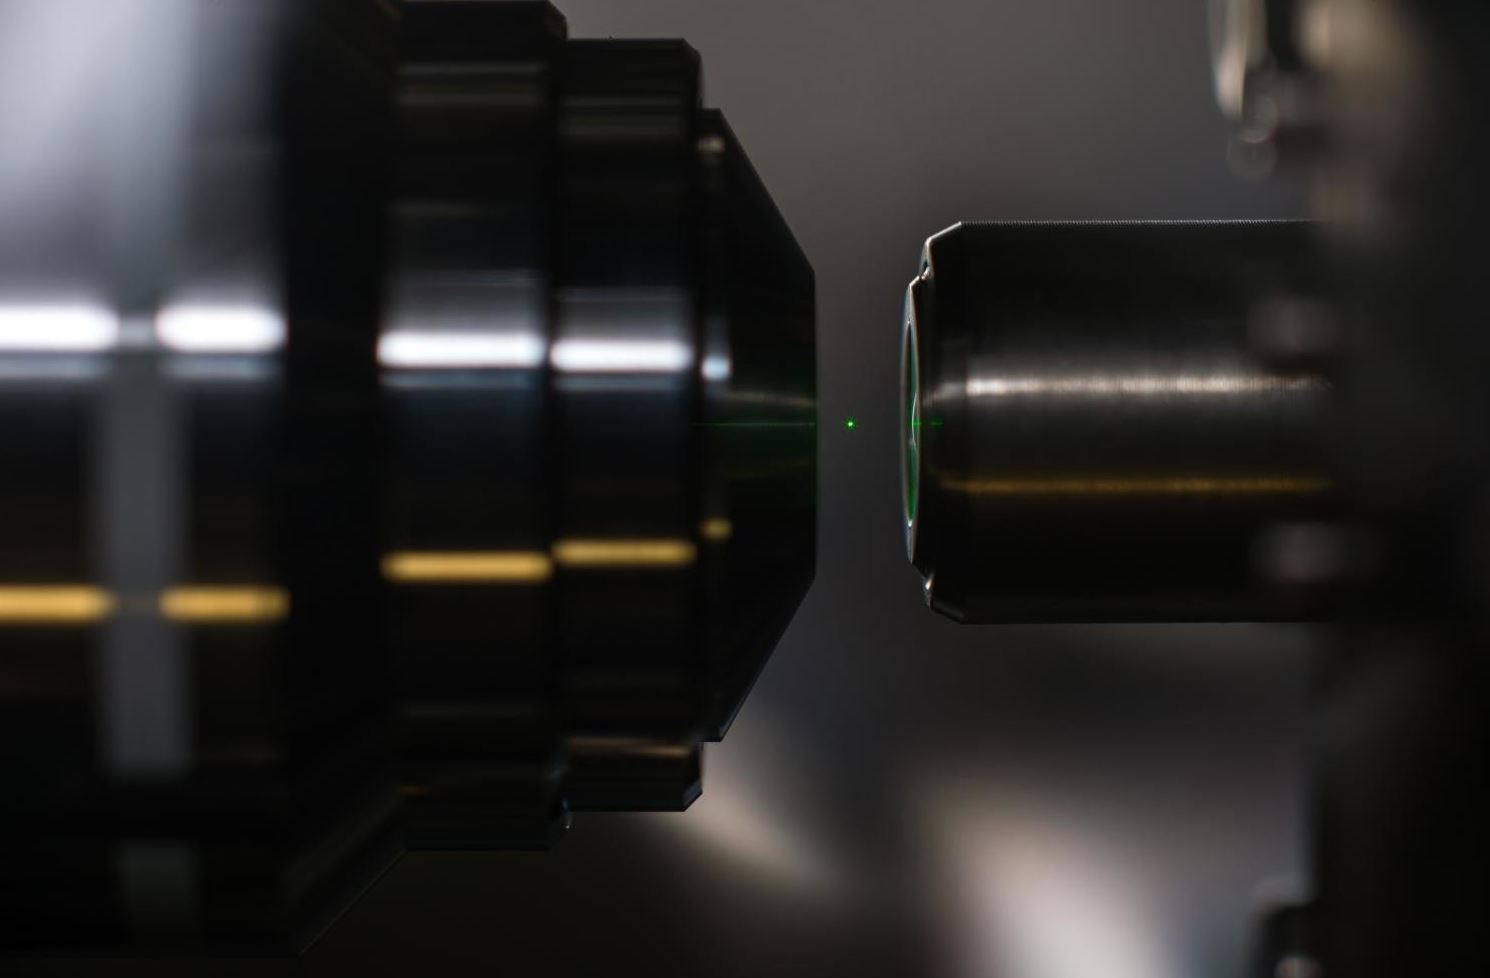 A silica sphere with a radius of 50 nanometers is trapped levitating in a beam of light. - Image Credit: J. Adam Fenster, University of Rochester,  CC BY-SA